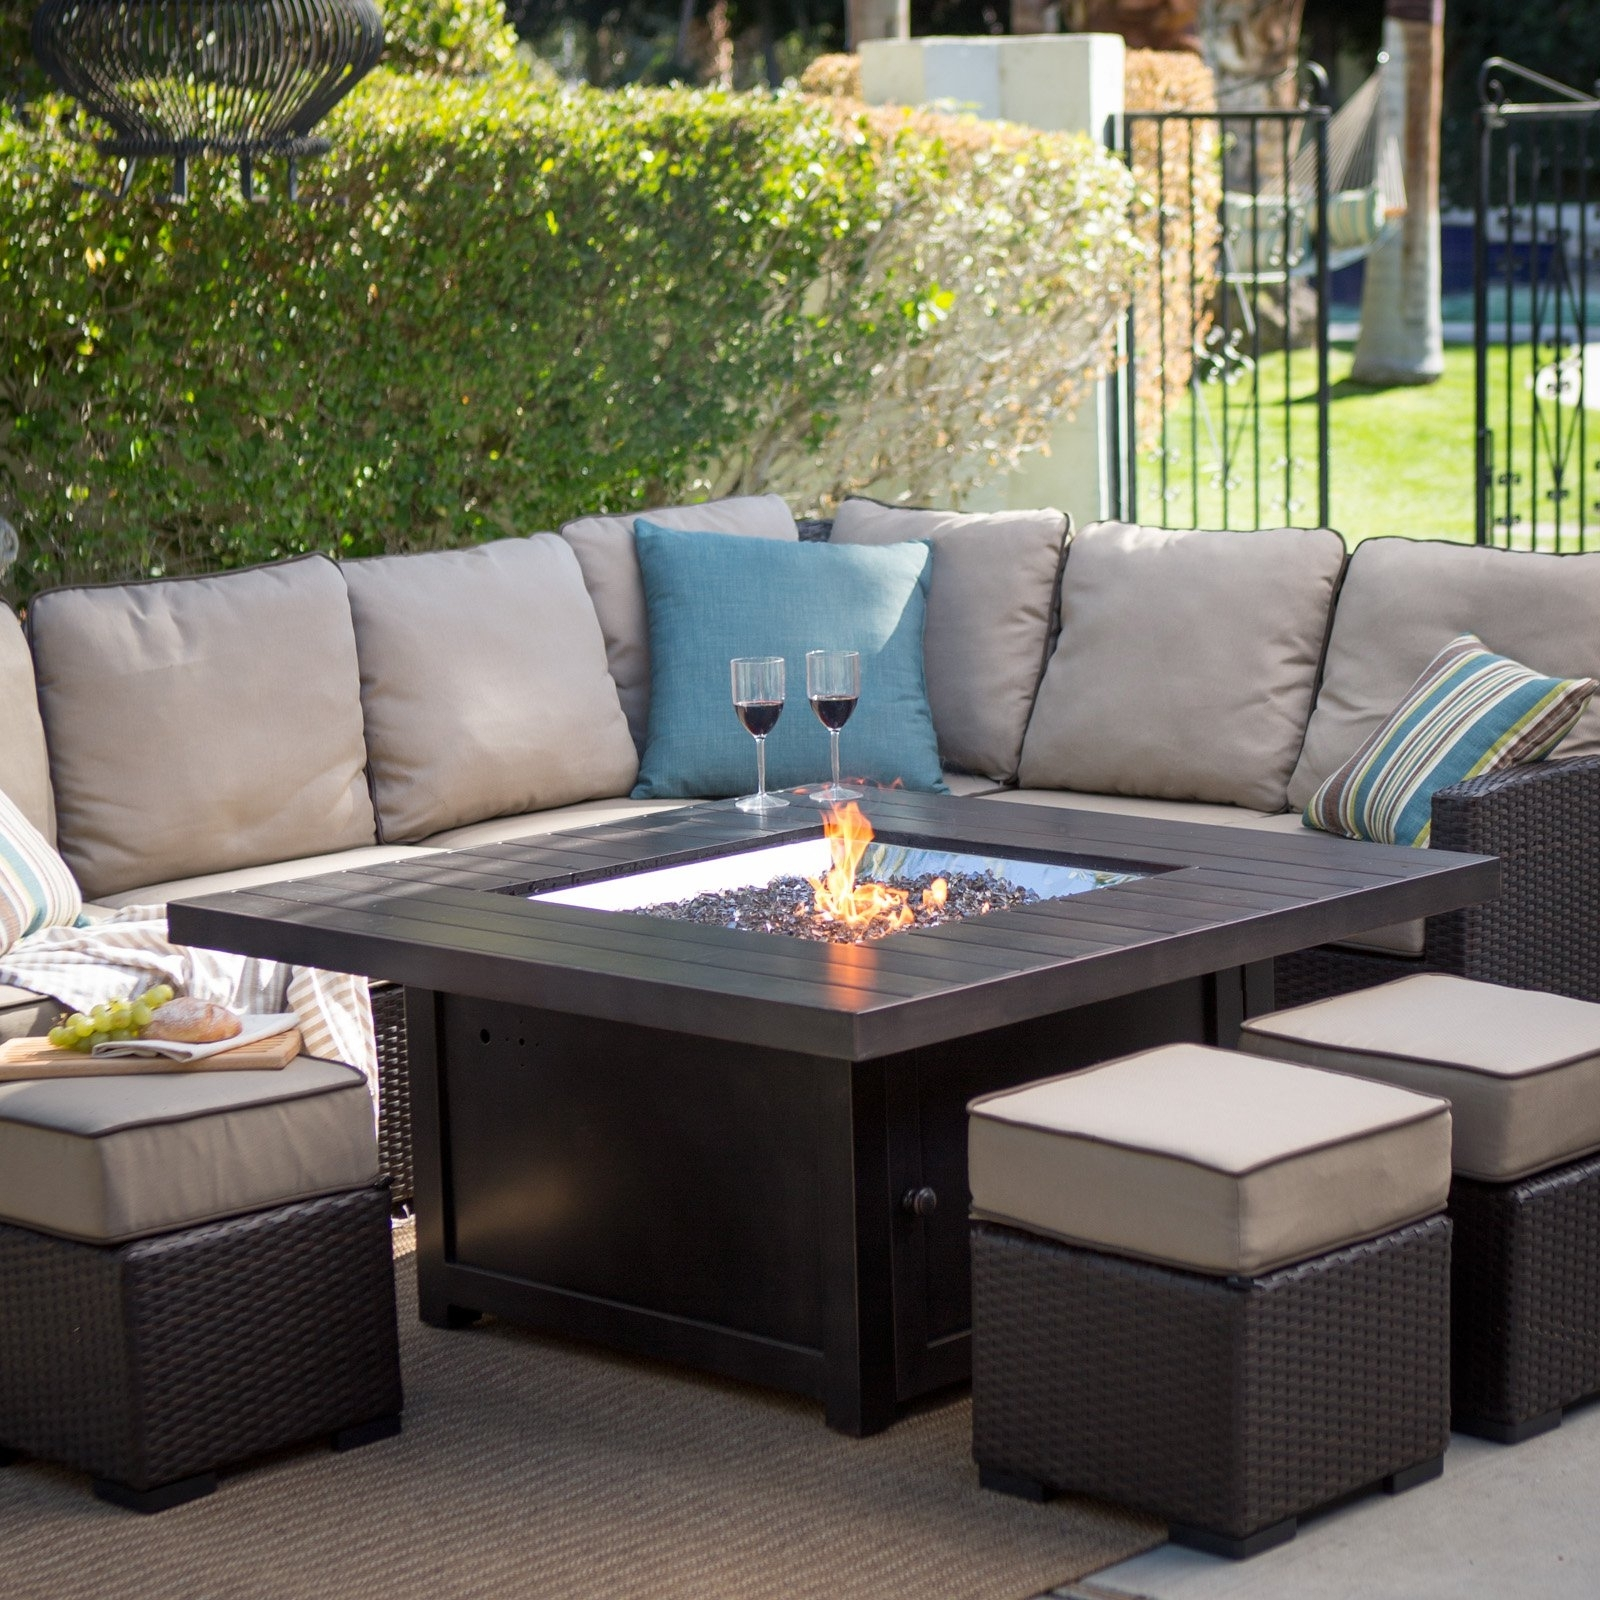 Most Recent Furniture: High Quality Patio Furniture Columbus Ohio And Fire Pit Regarding Patio Conversation Sets With Fire Pit Table (View 8 of 20)